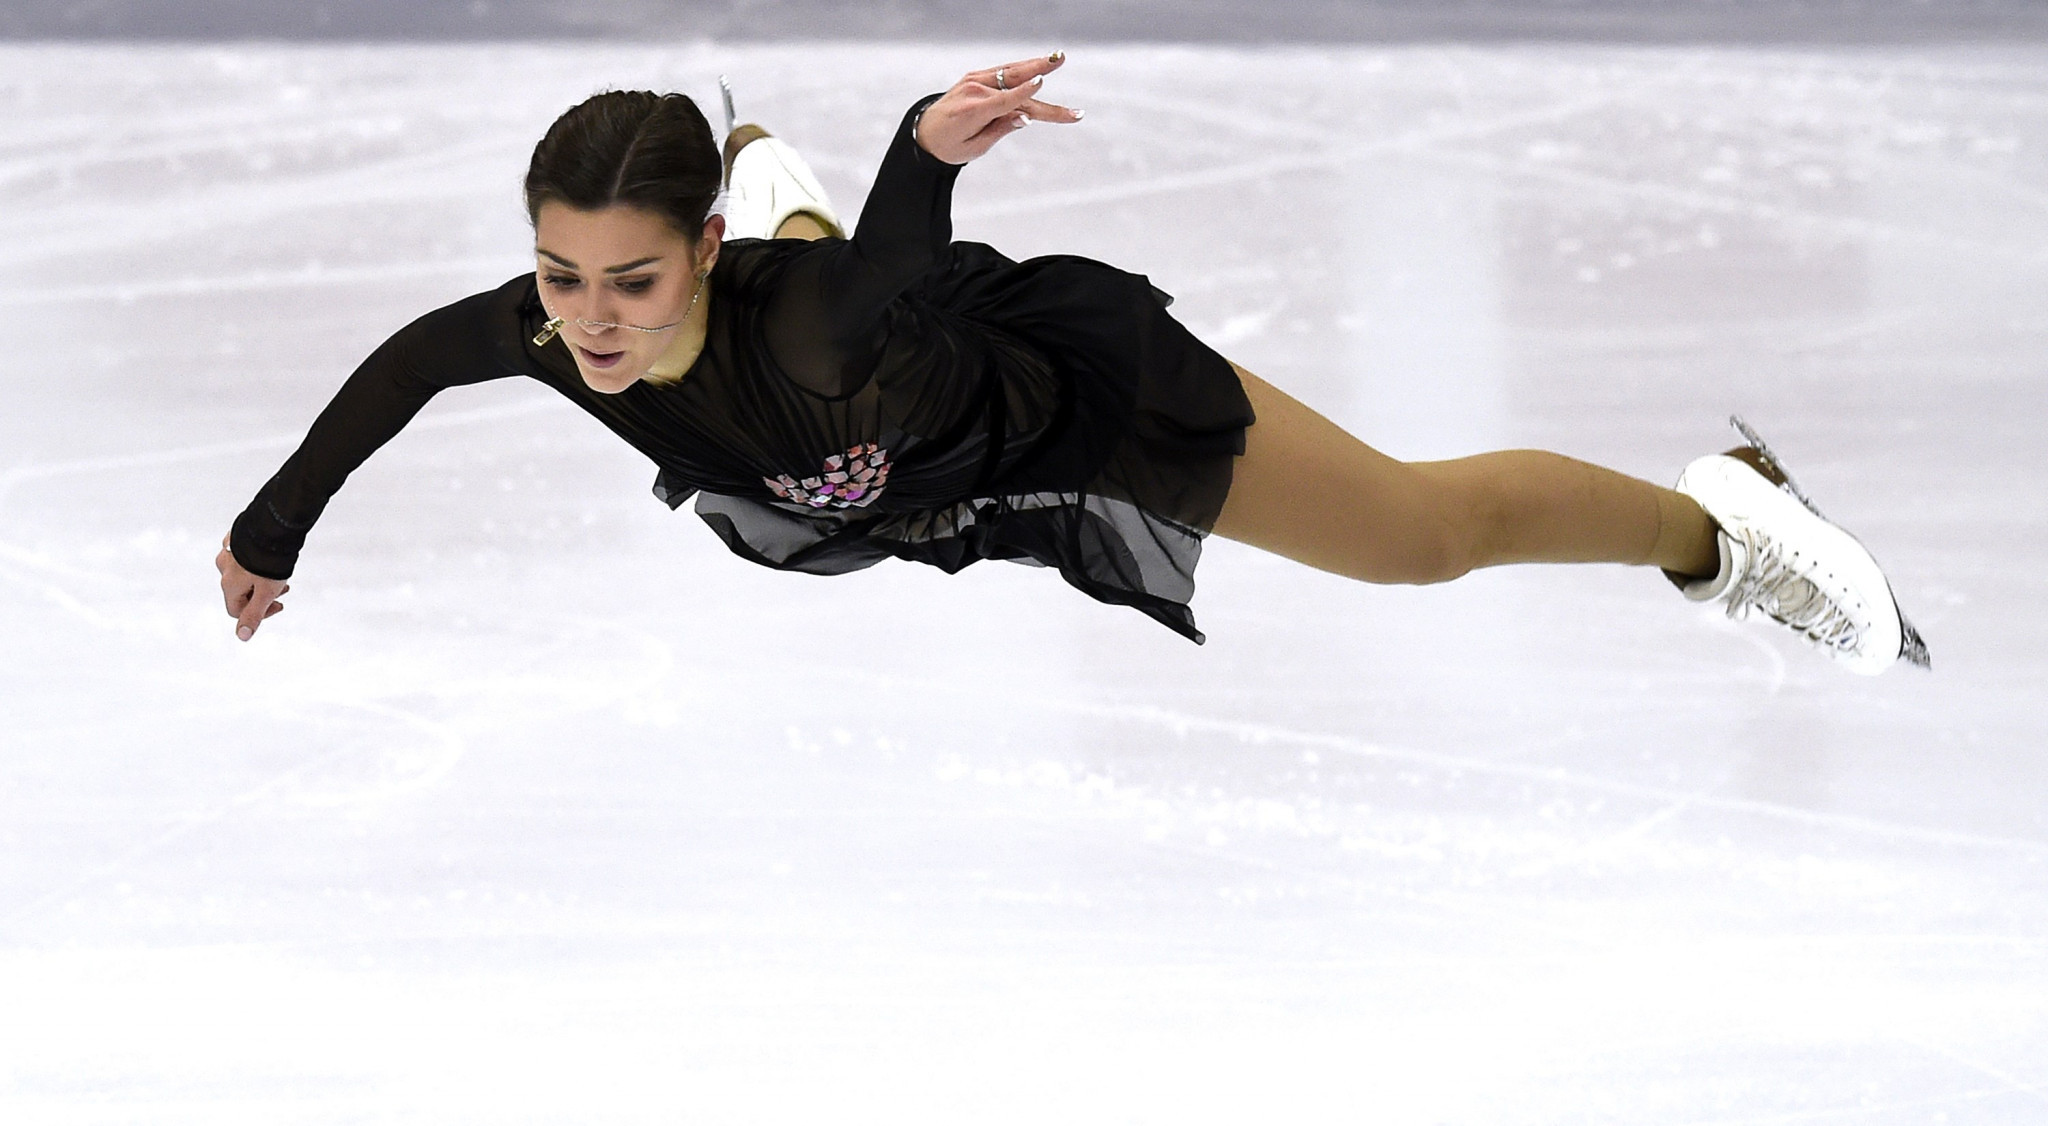 Disciplinary proceedings have been ended against Adelina Sotnikova ©Getty Images